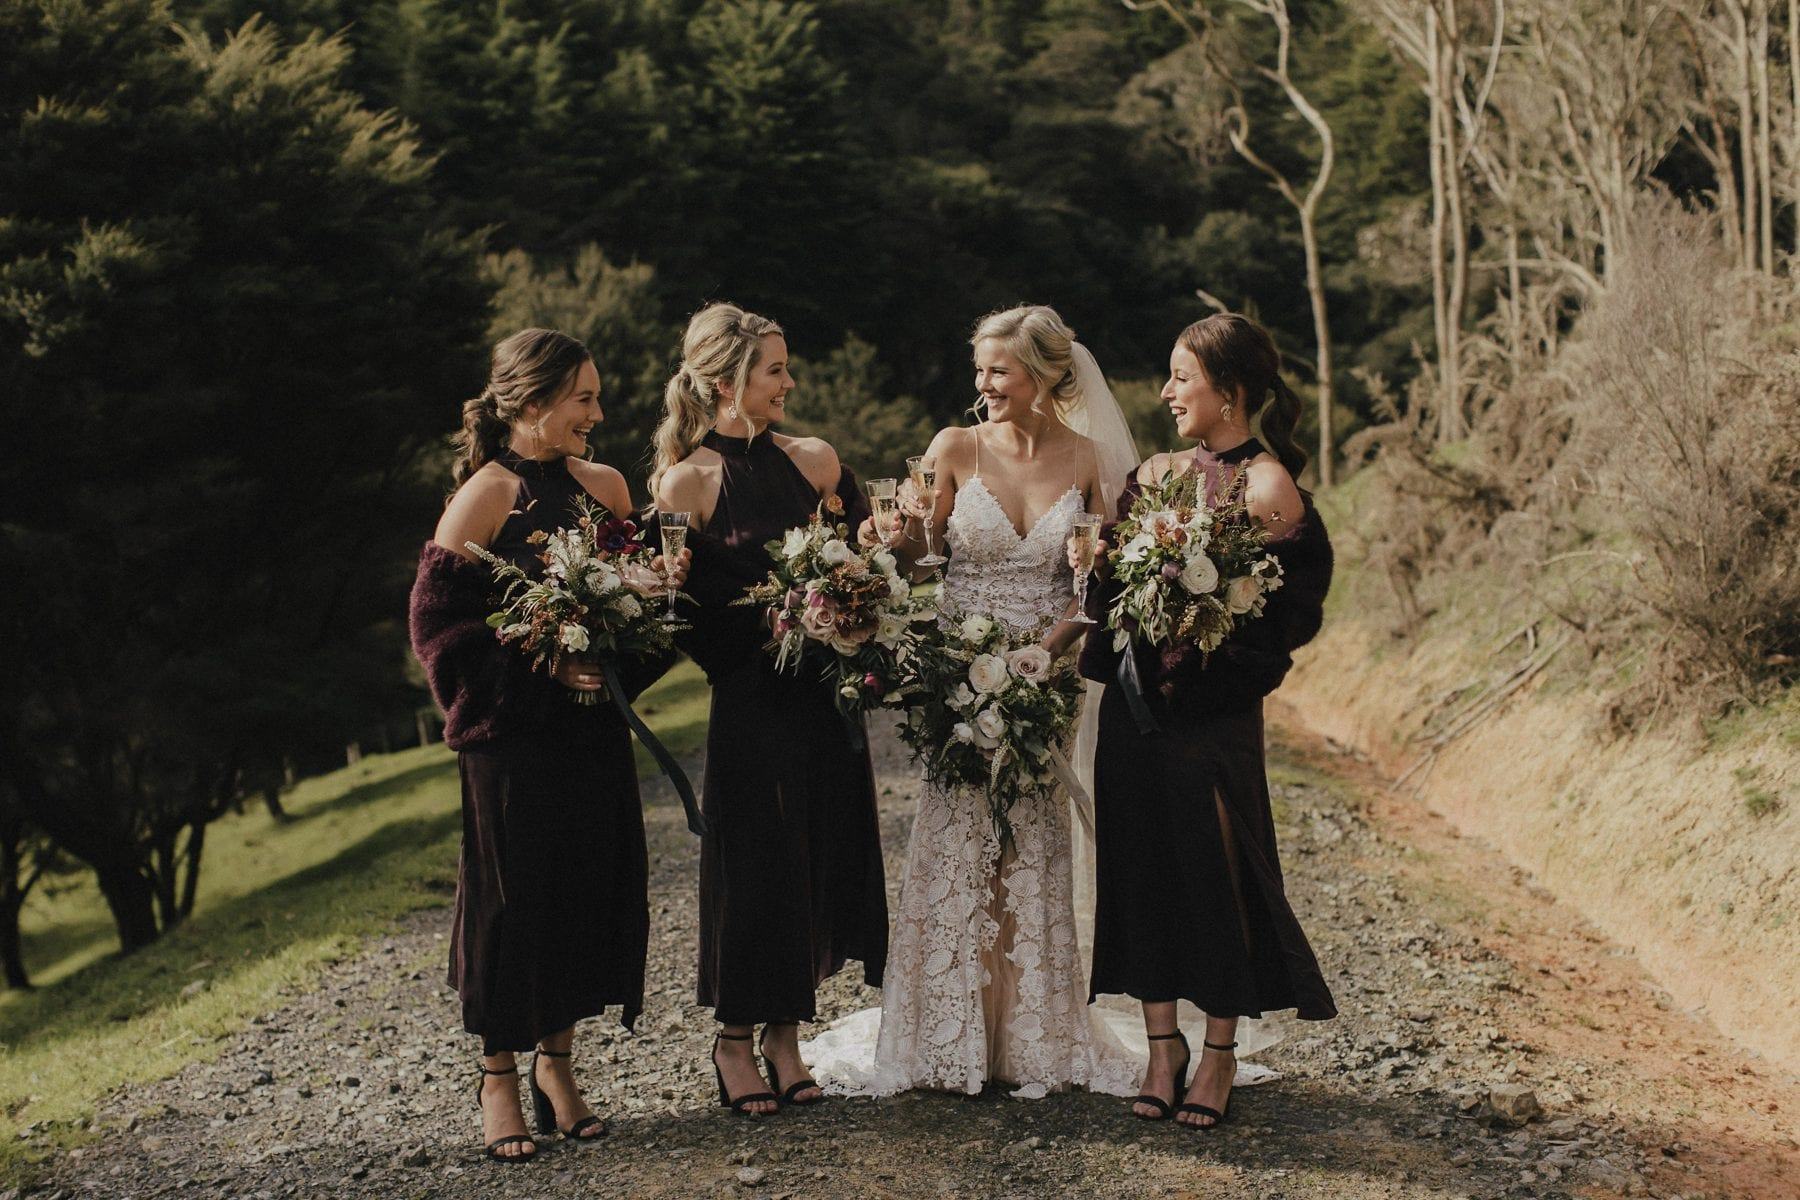 On My Hand Wedding flowers for real wedding - Gert and Trent in Kauri Bay Boomrock - bride and bridesmaids with bouquets